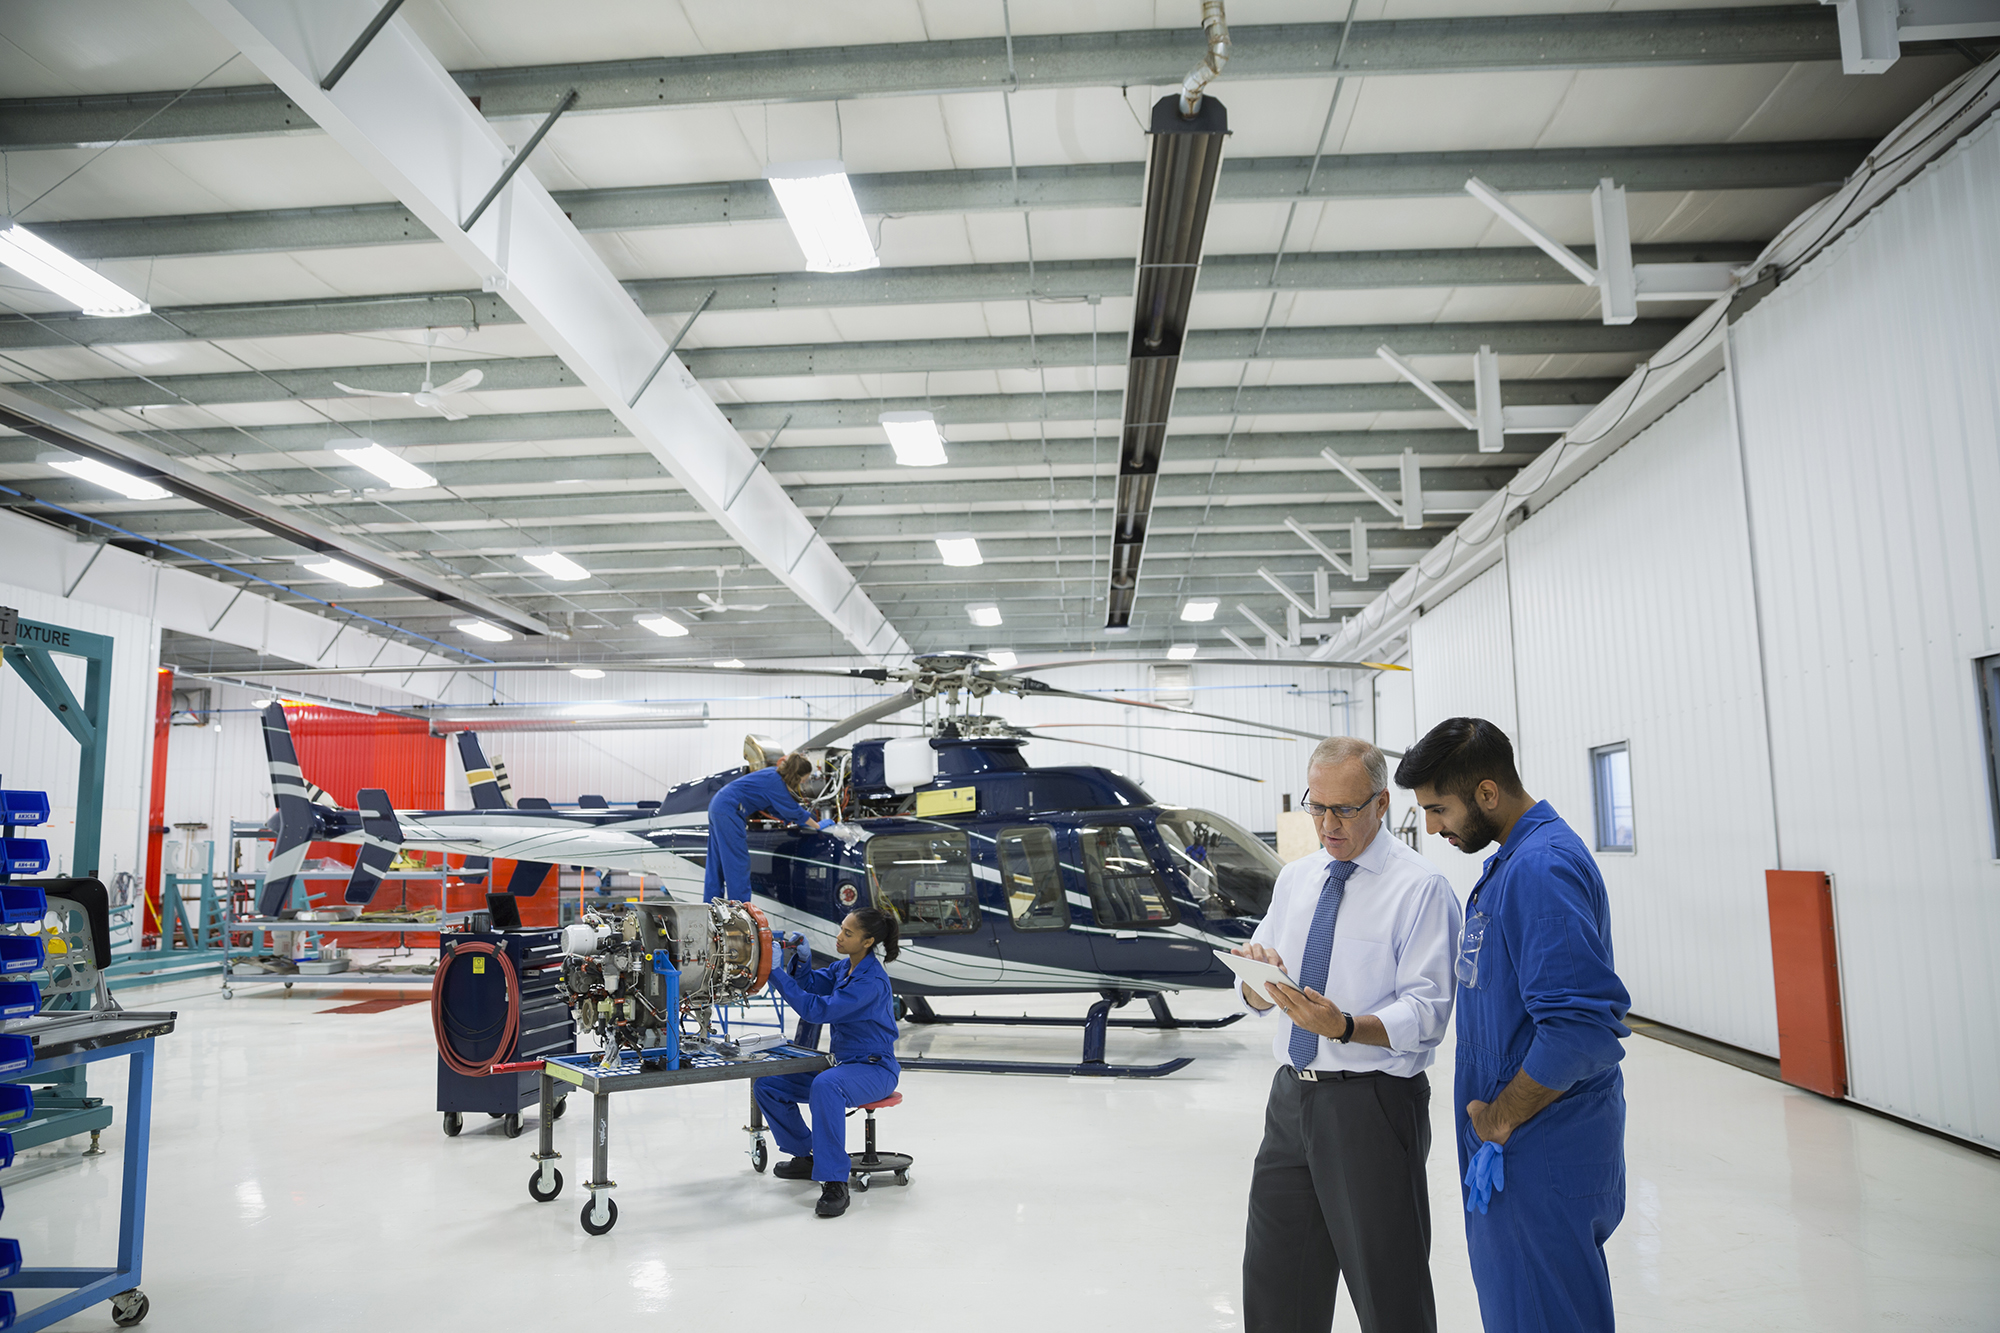 Manager and helicopter mechanic using digital tablet